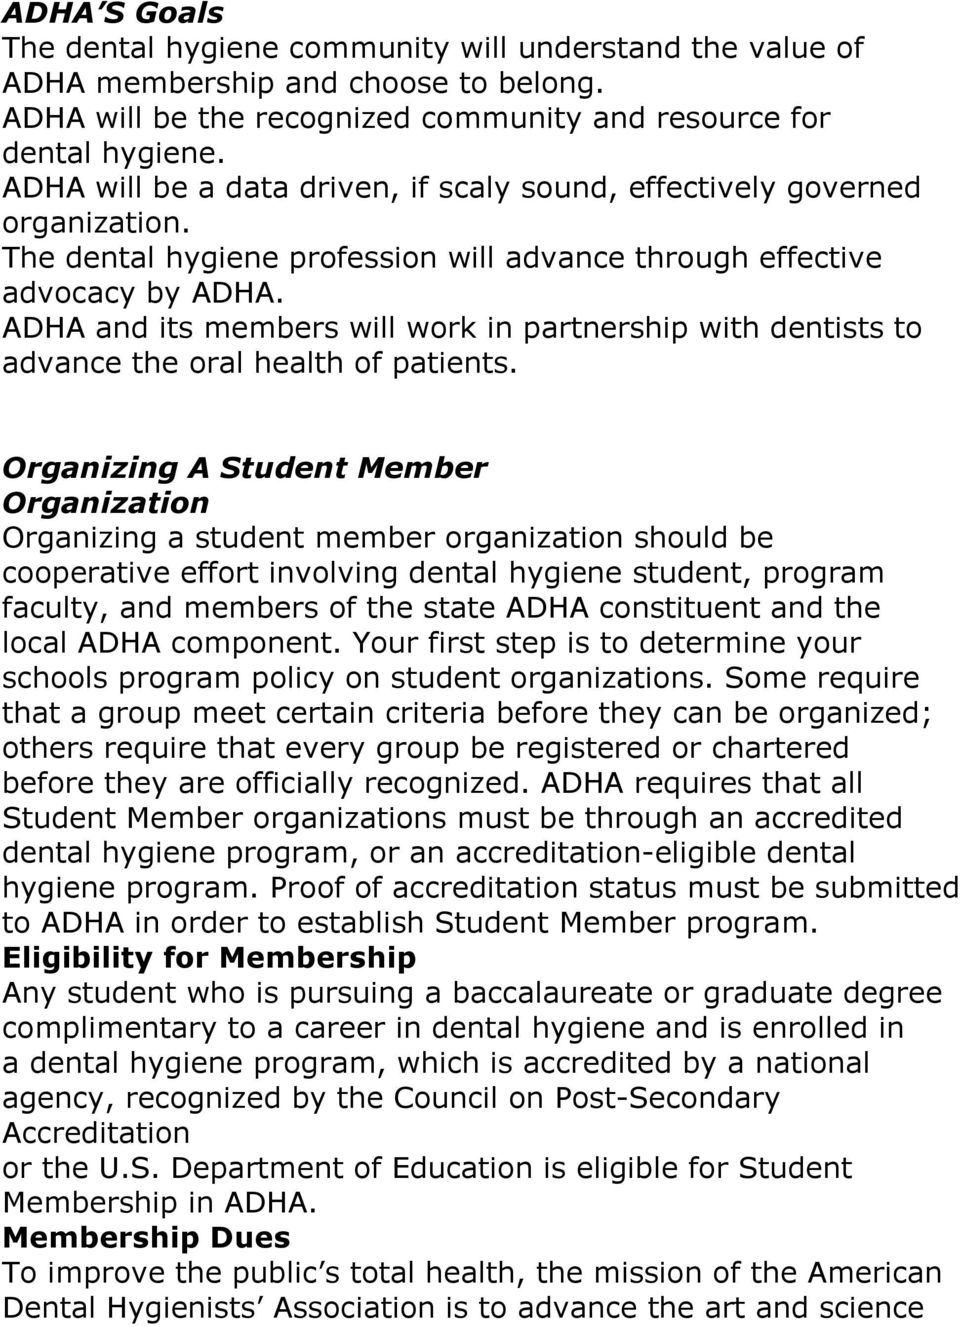 ADHA and its members will work in partnership with dentists to advance the oral health of patients.